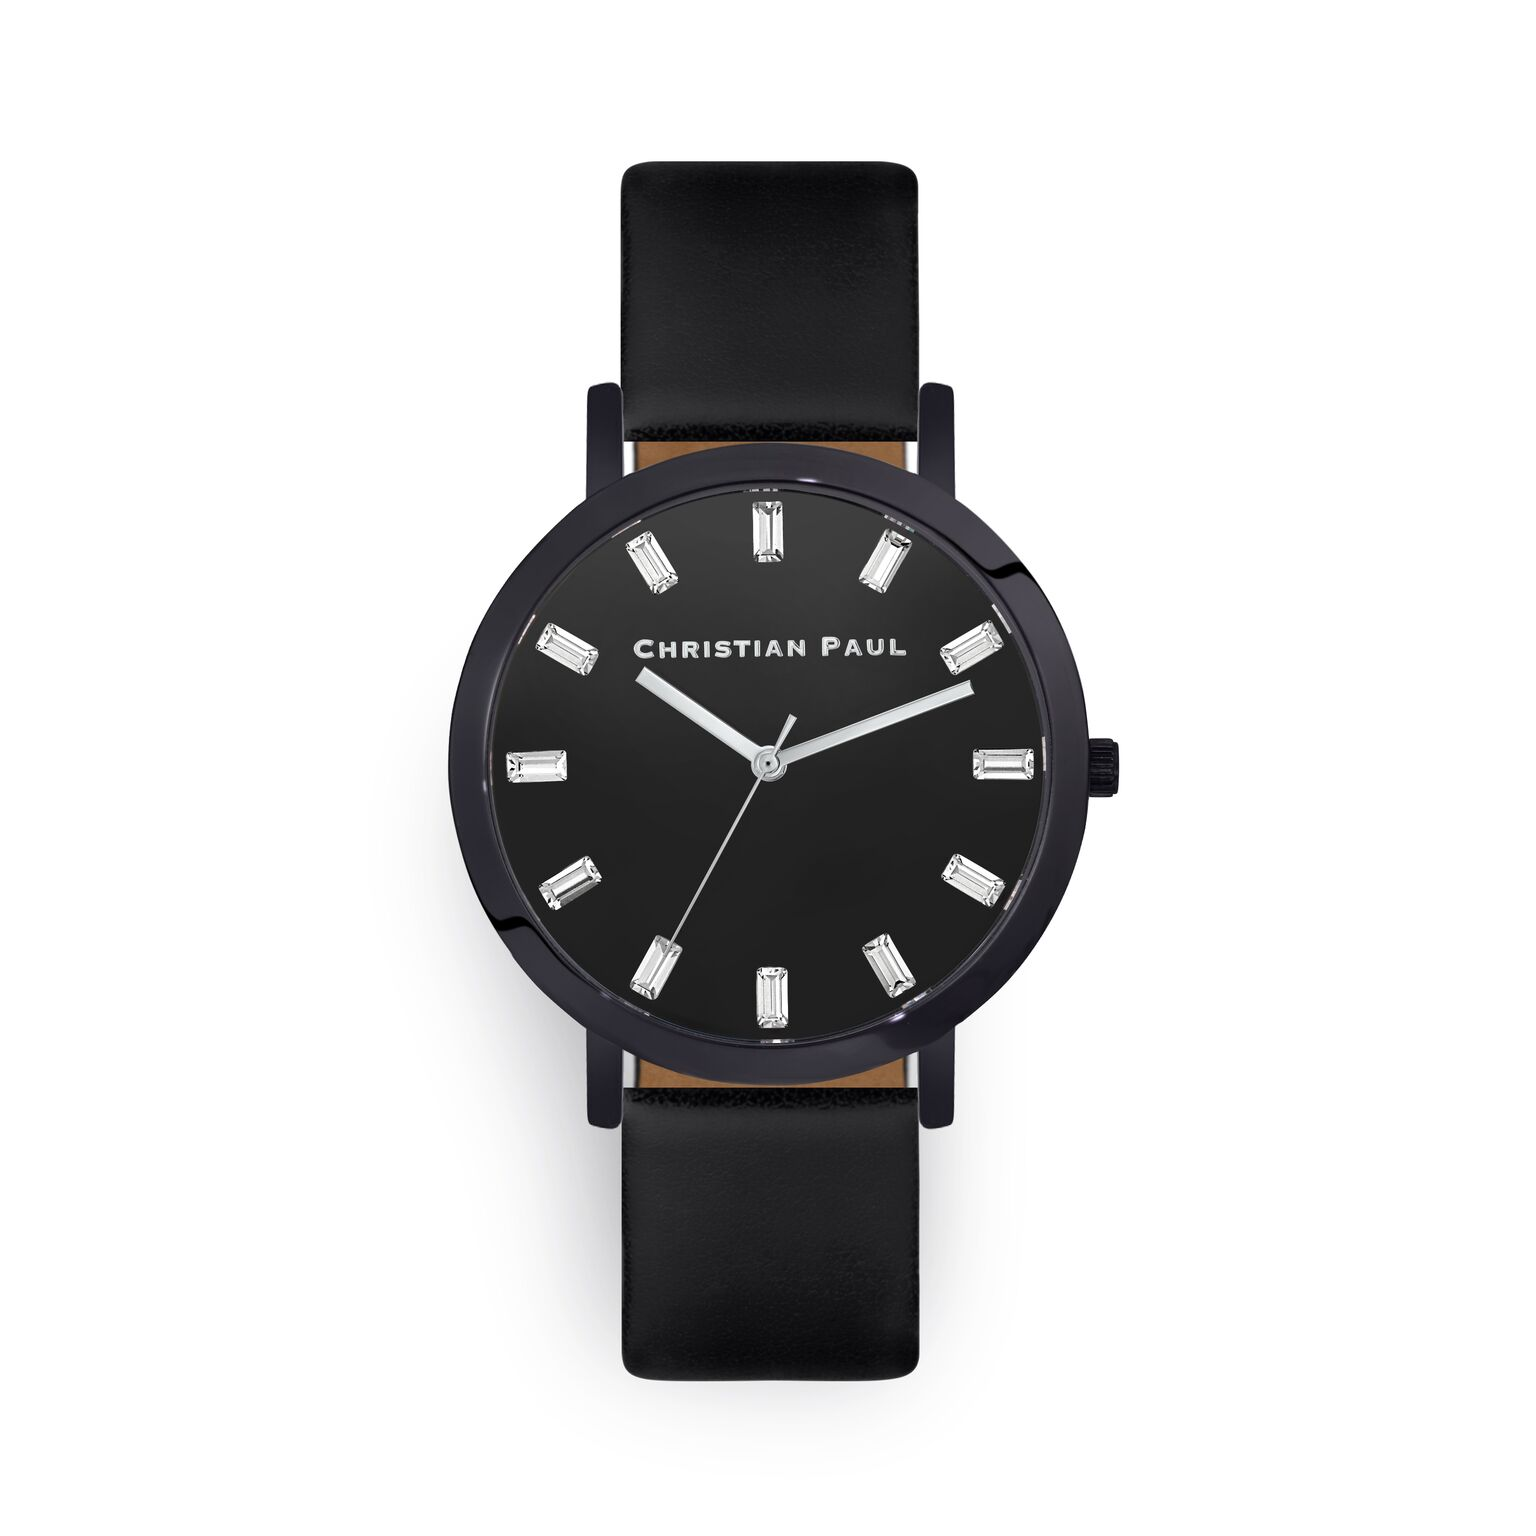 Luxury Black leather watch with crystals